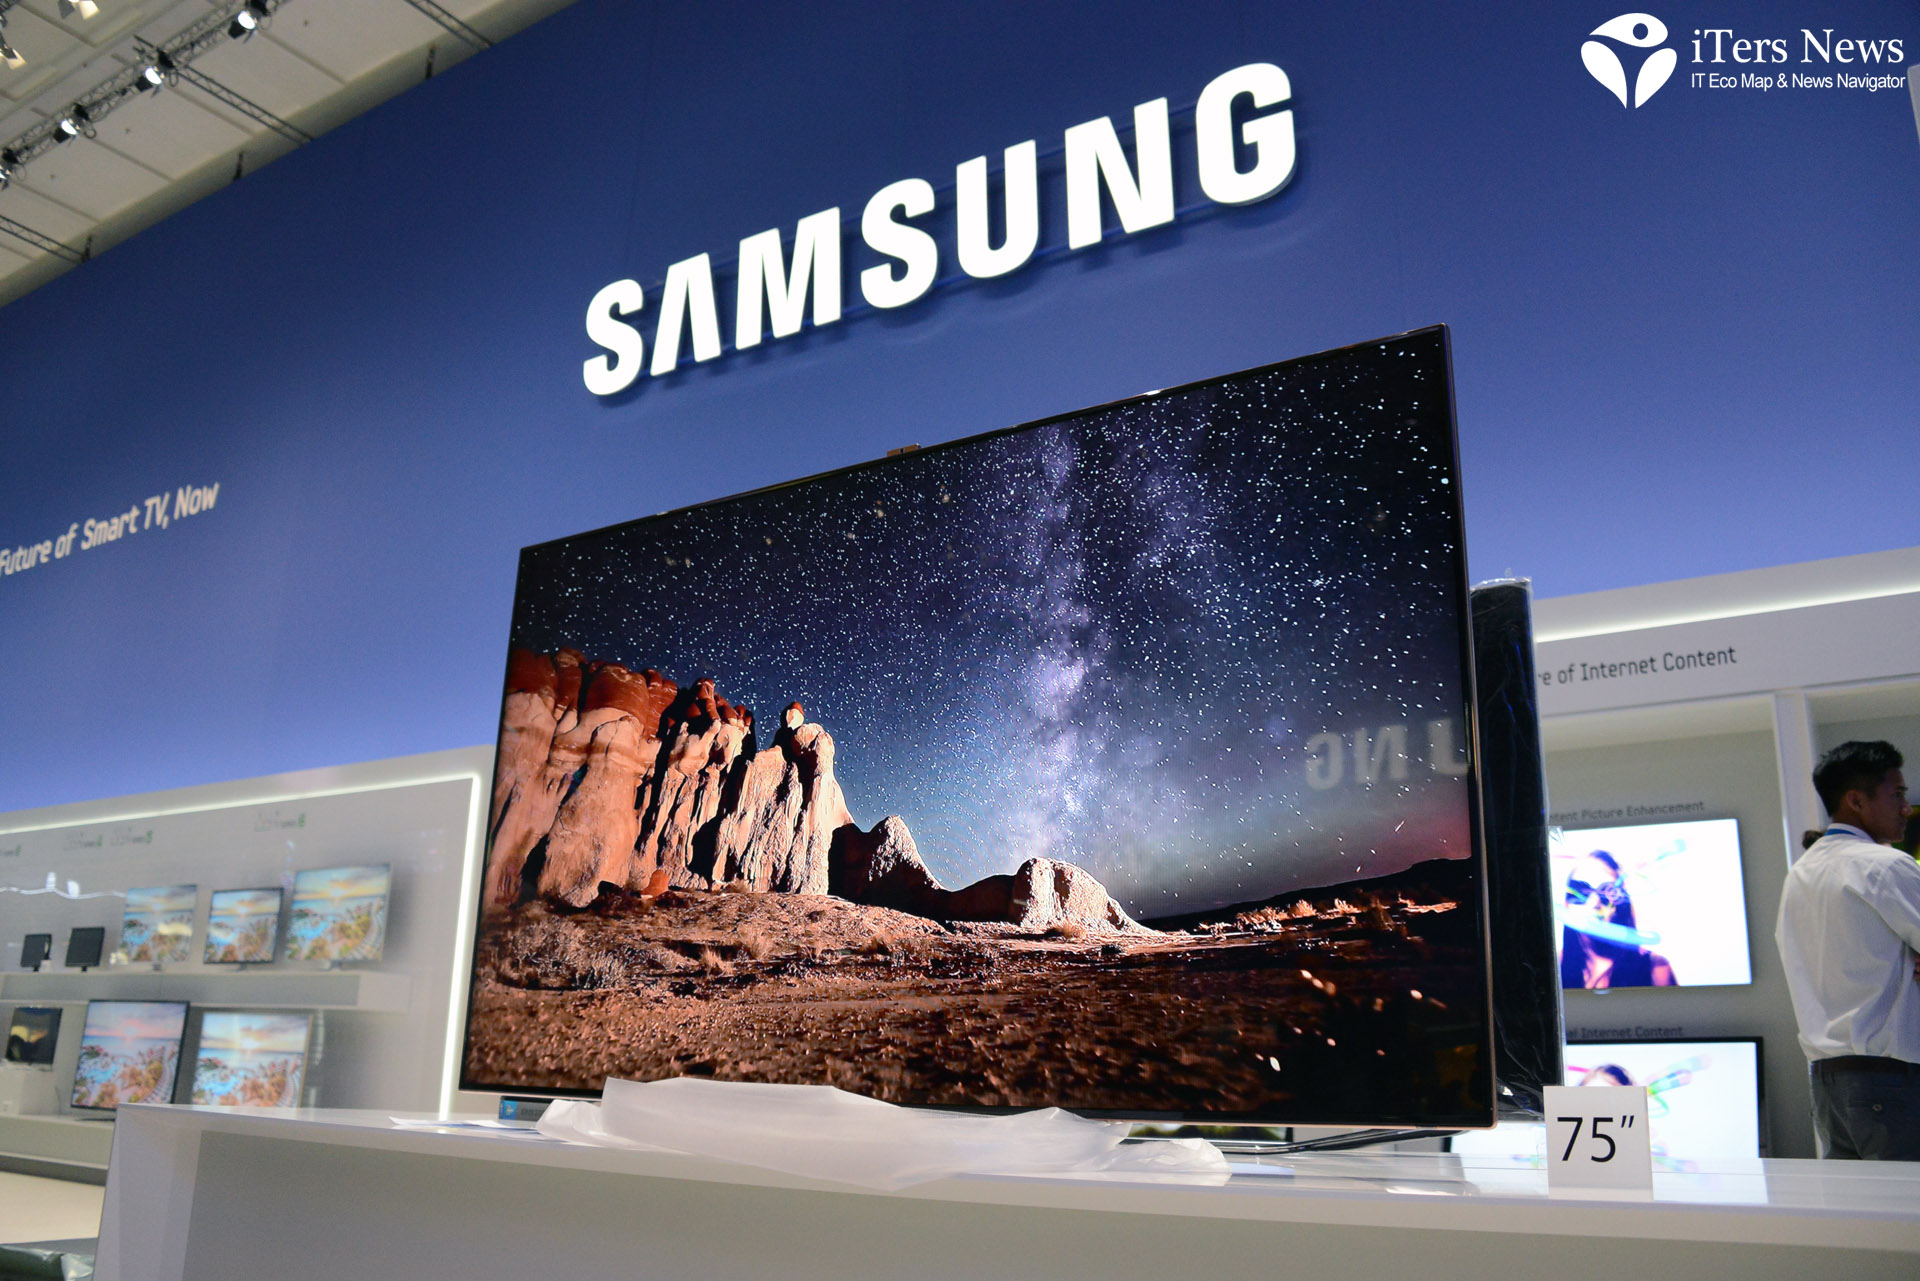 75 LCD TV , SMART TV, 3D TV, SAMSUNG, IFA 2012